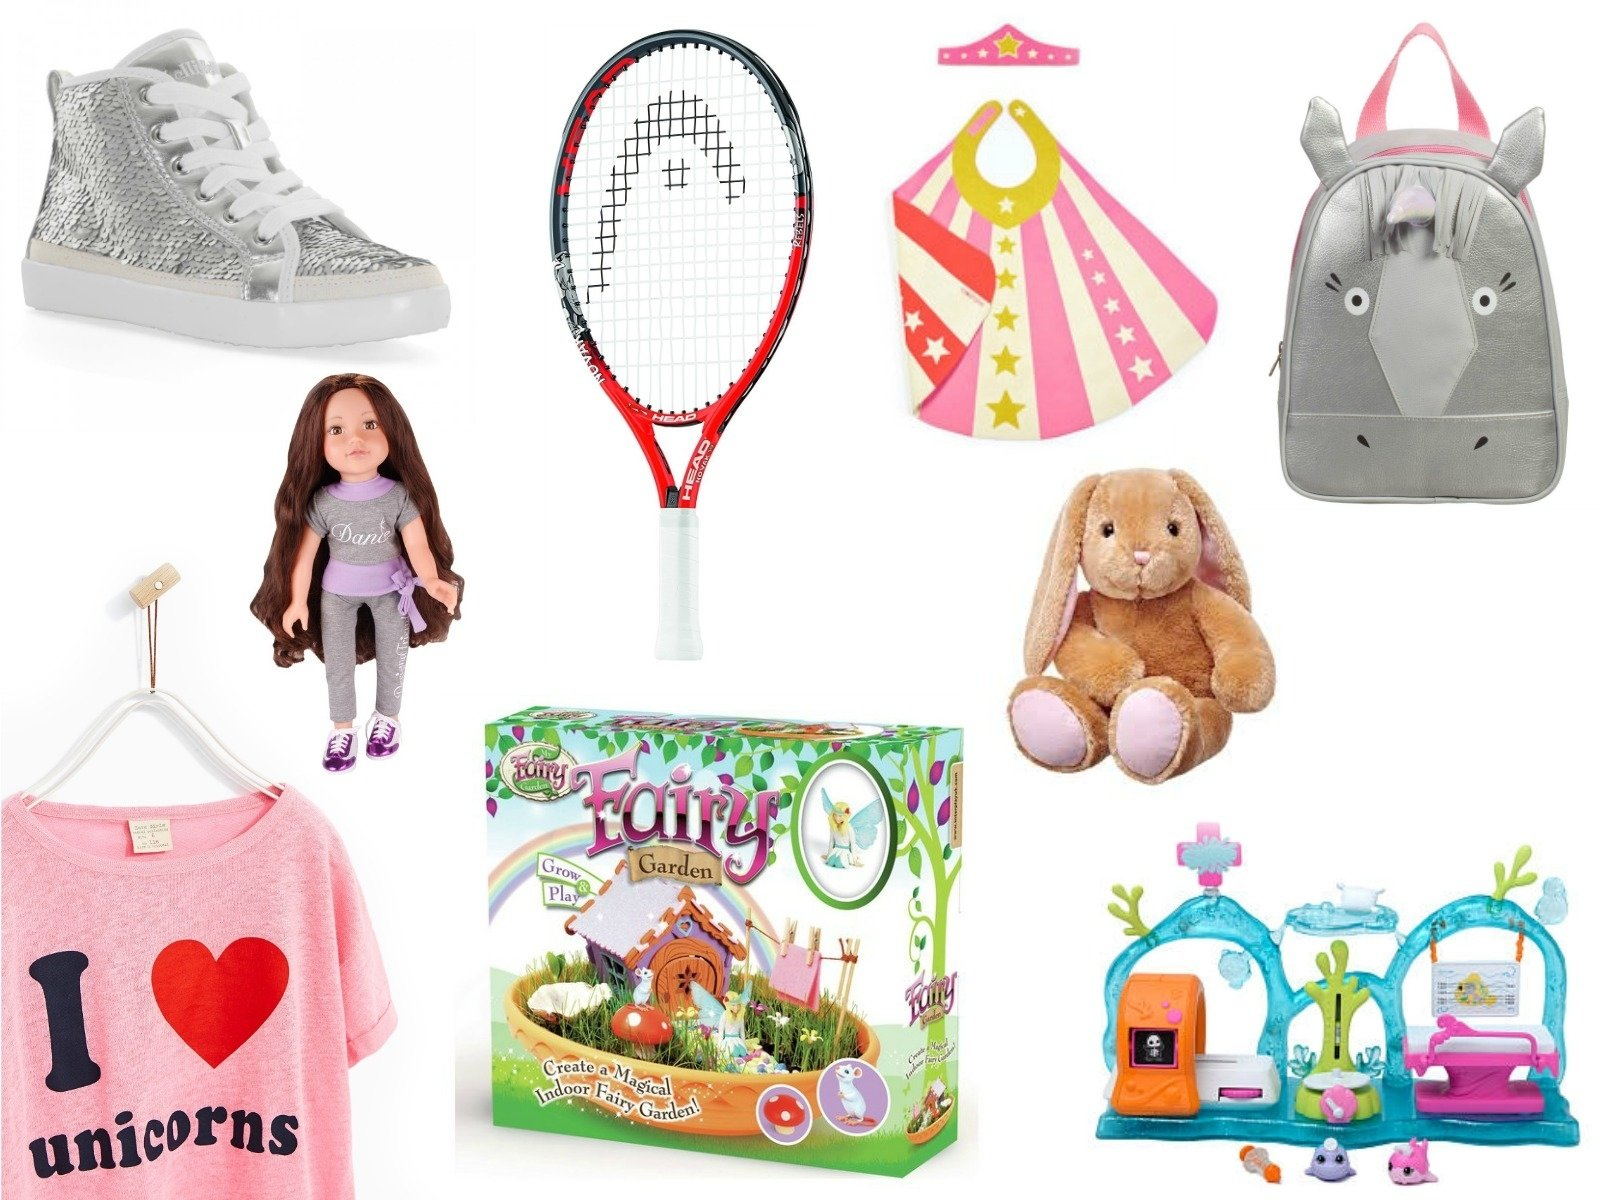 10 Lovable 5 Yr Old Girl Birthday Gift Ideas presents for a five year old girl k elizabeth 3 2021